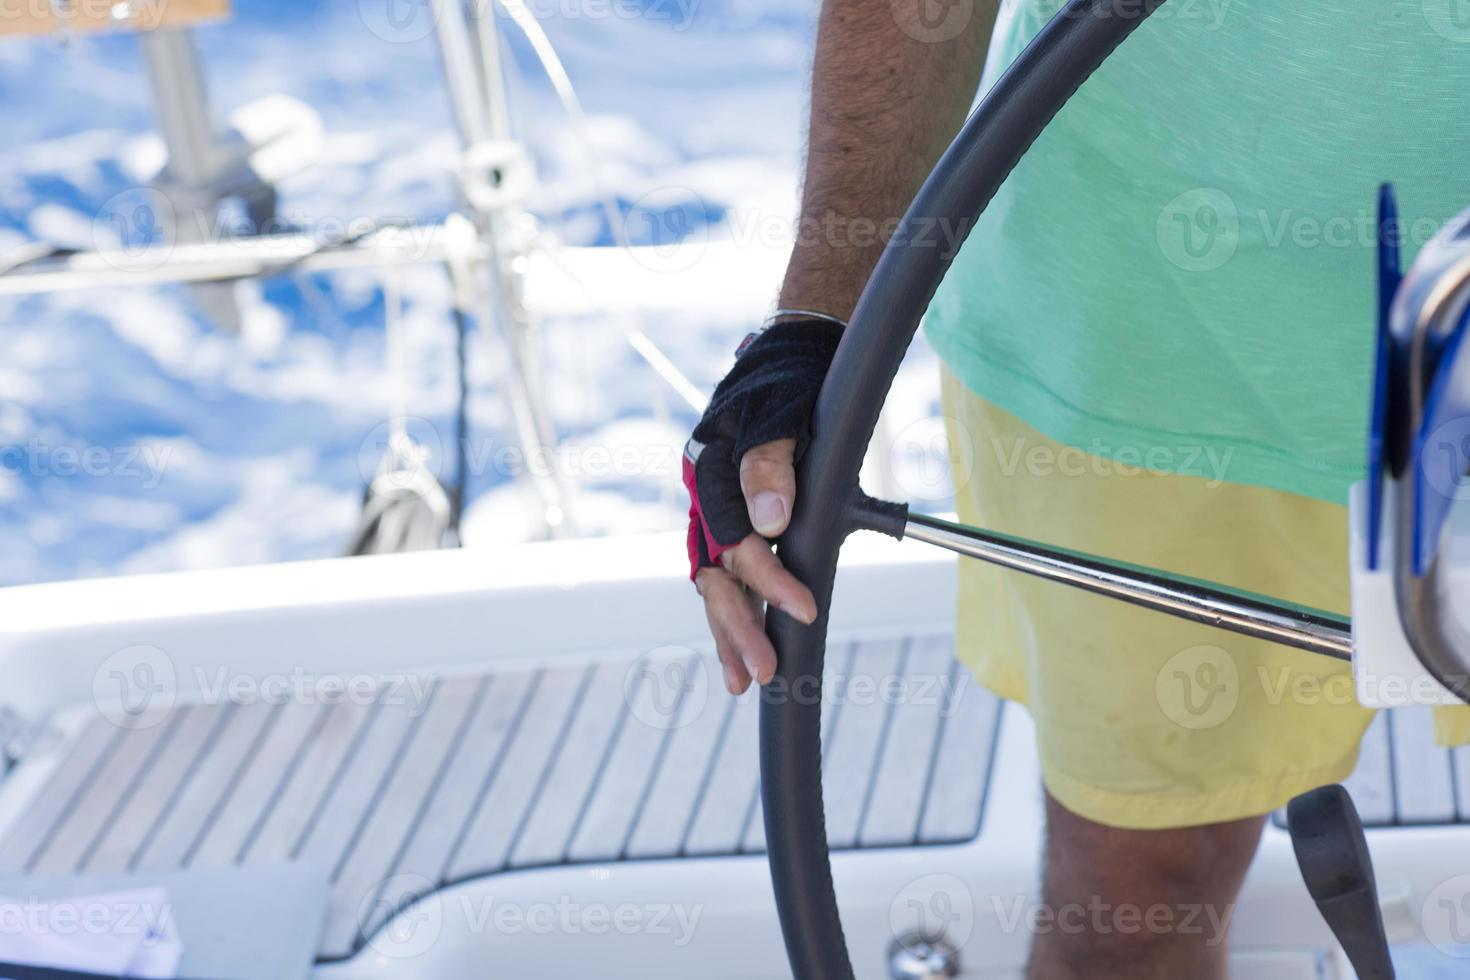 Steering a yatch - Stock Image photo